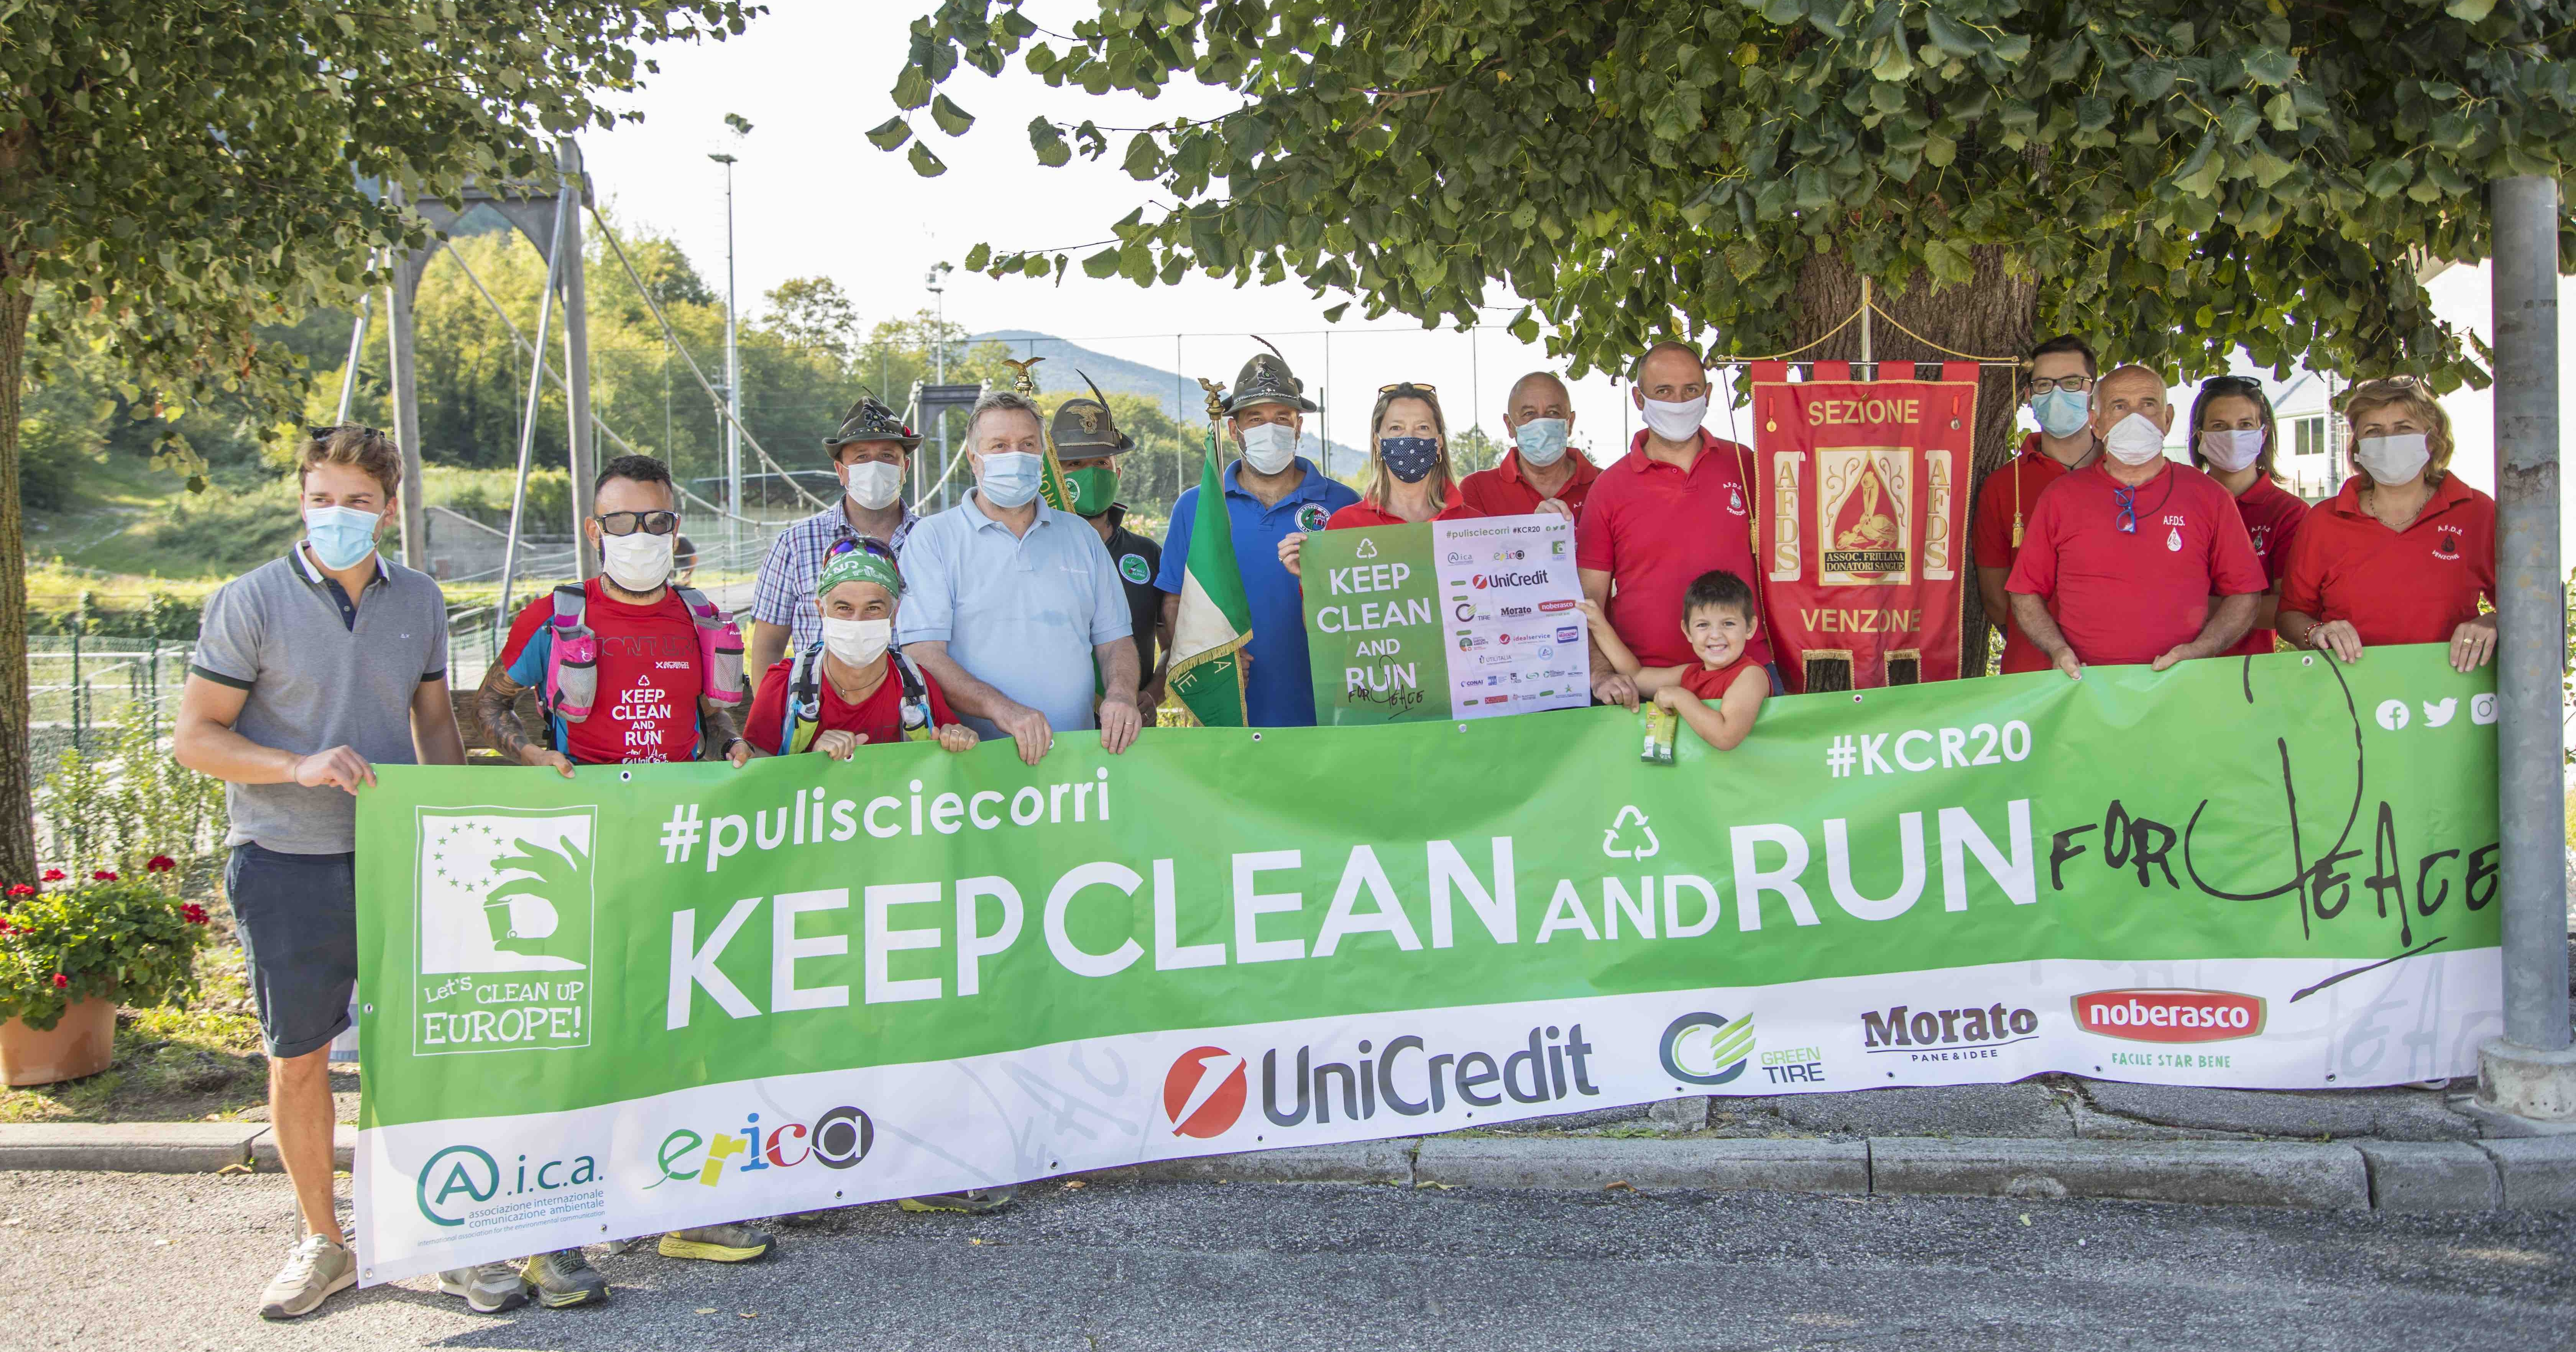 Keep Clean And Run for Peace il docufilm-AICA